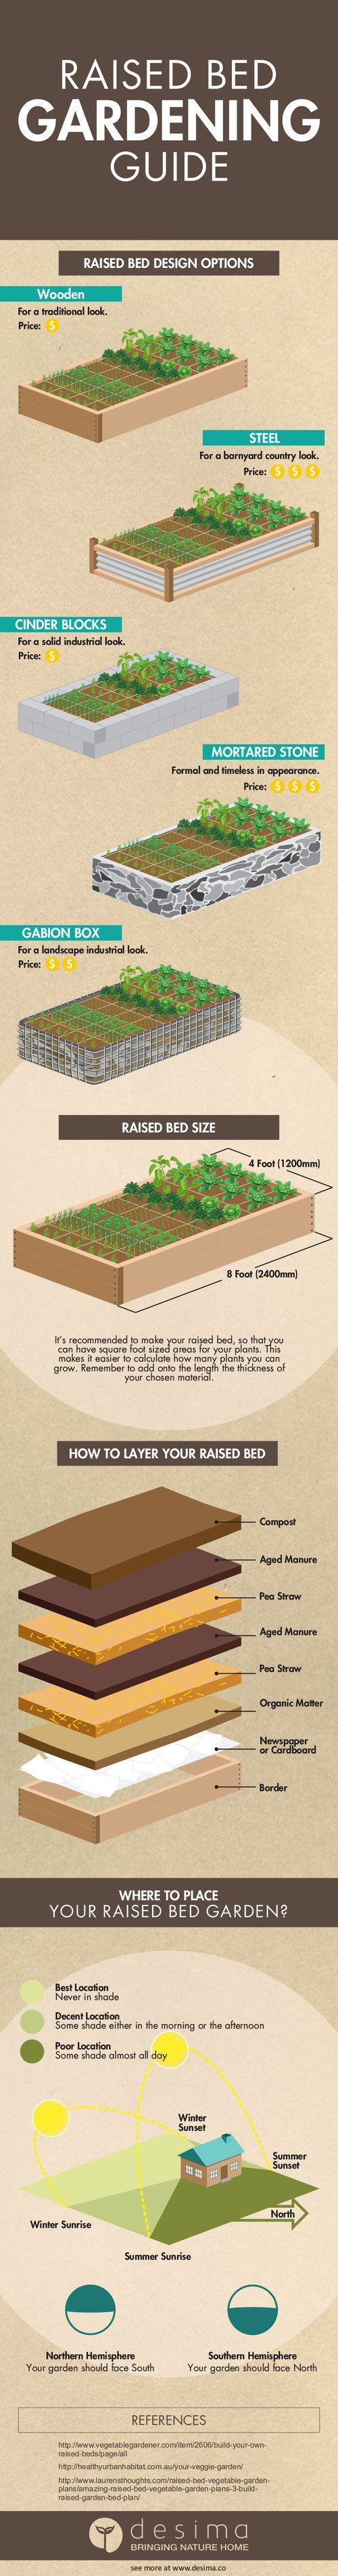 Follow All These Tips To Make Growing Healthy And Fruitful Tomato Plants Easy 1 Plant Your Tomato Raised Garden Beds Raised Beds Growing An Avocado Tree